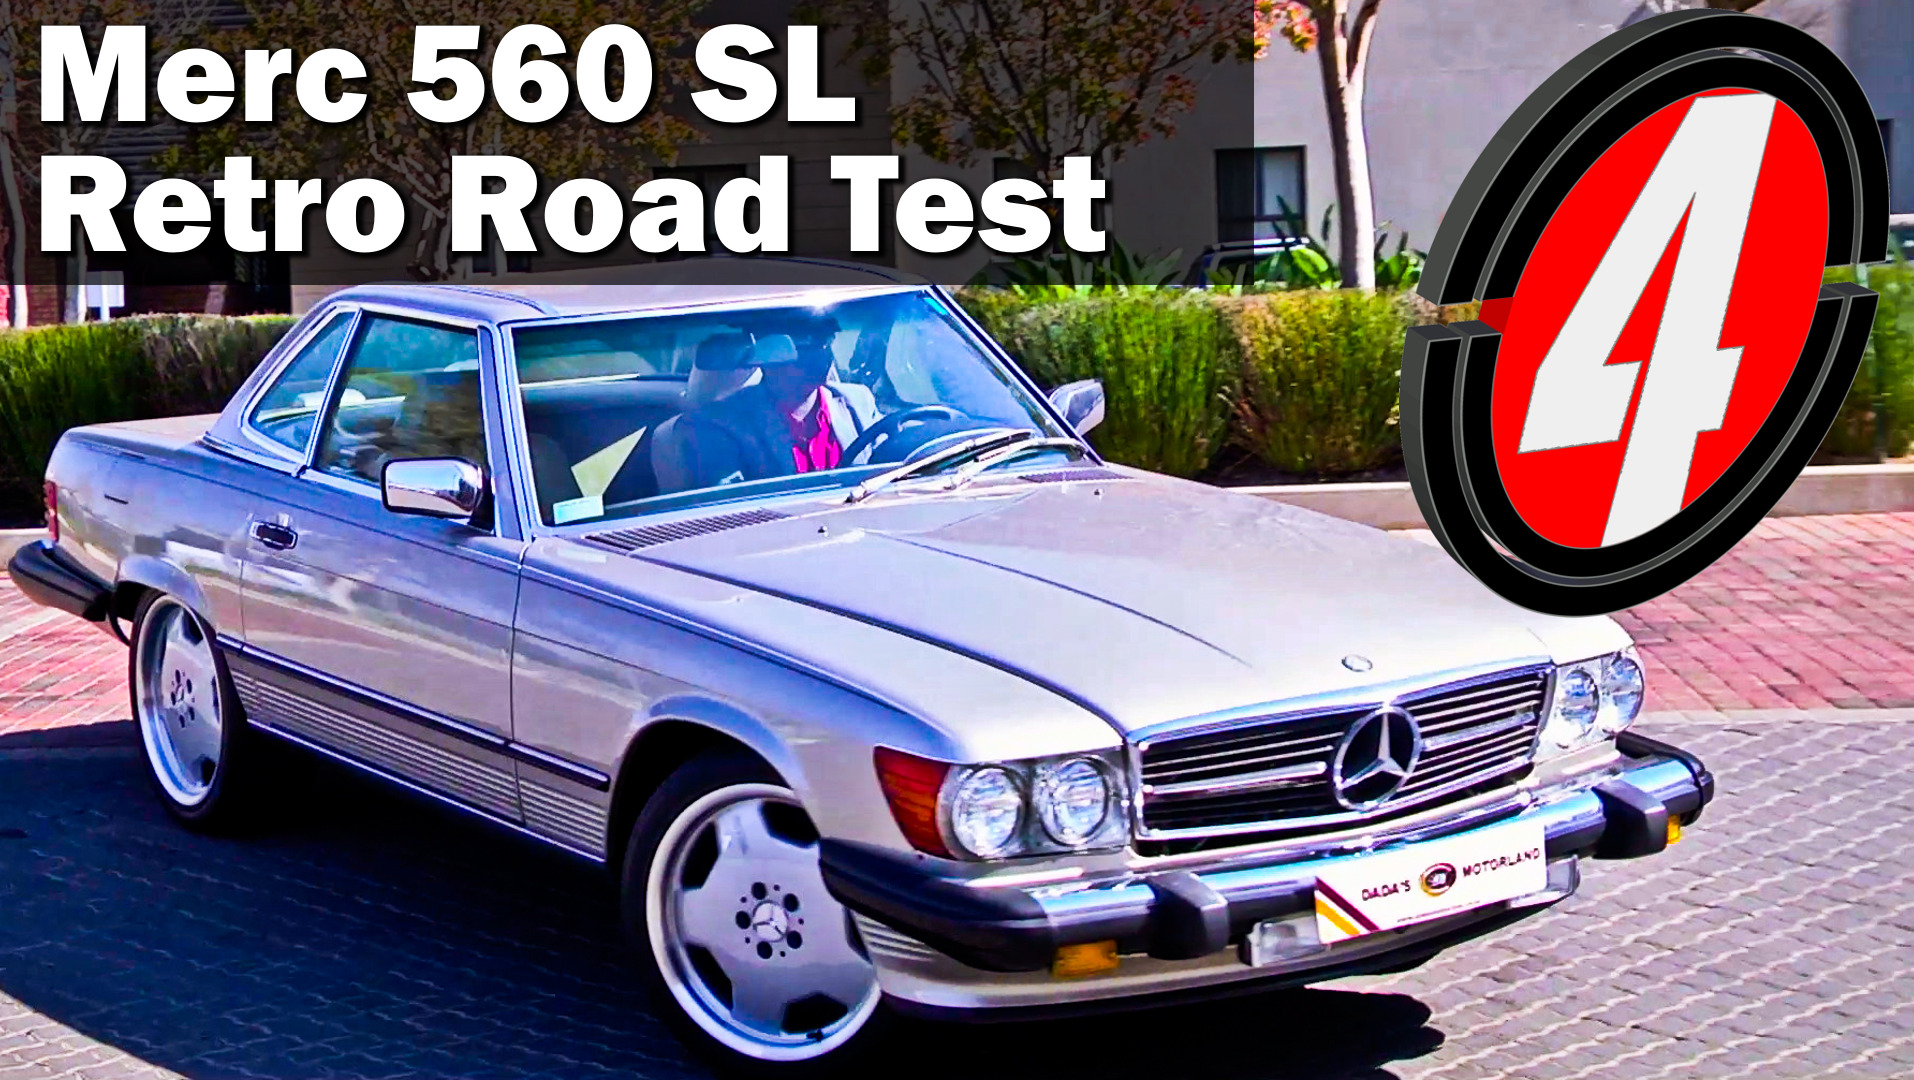 1989 Mercedes Benz SL 560 | Used Car Review